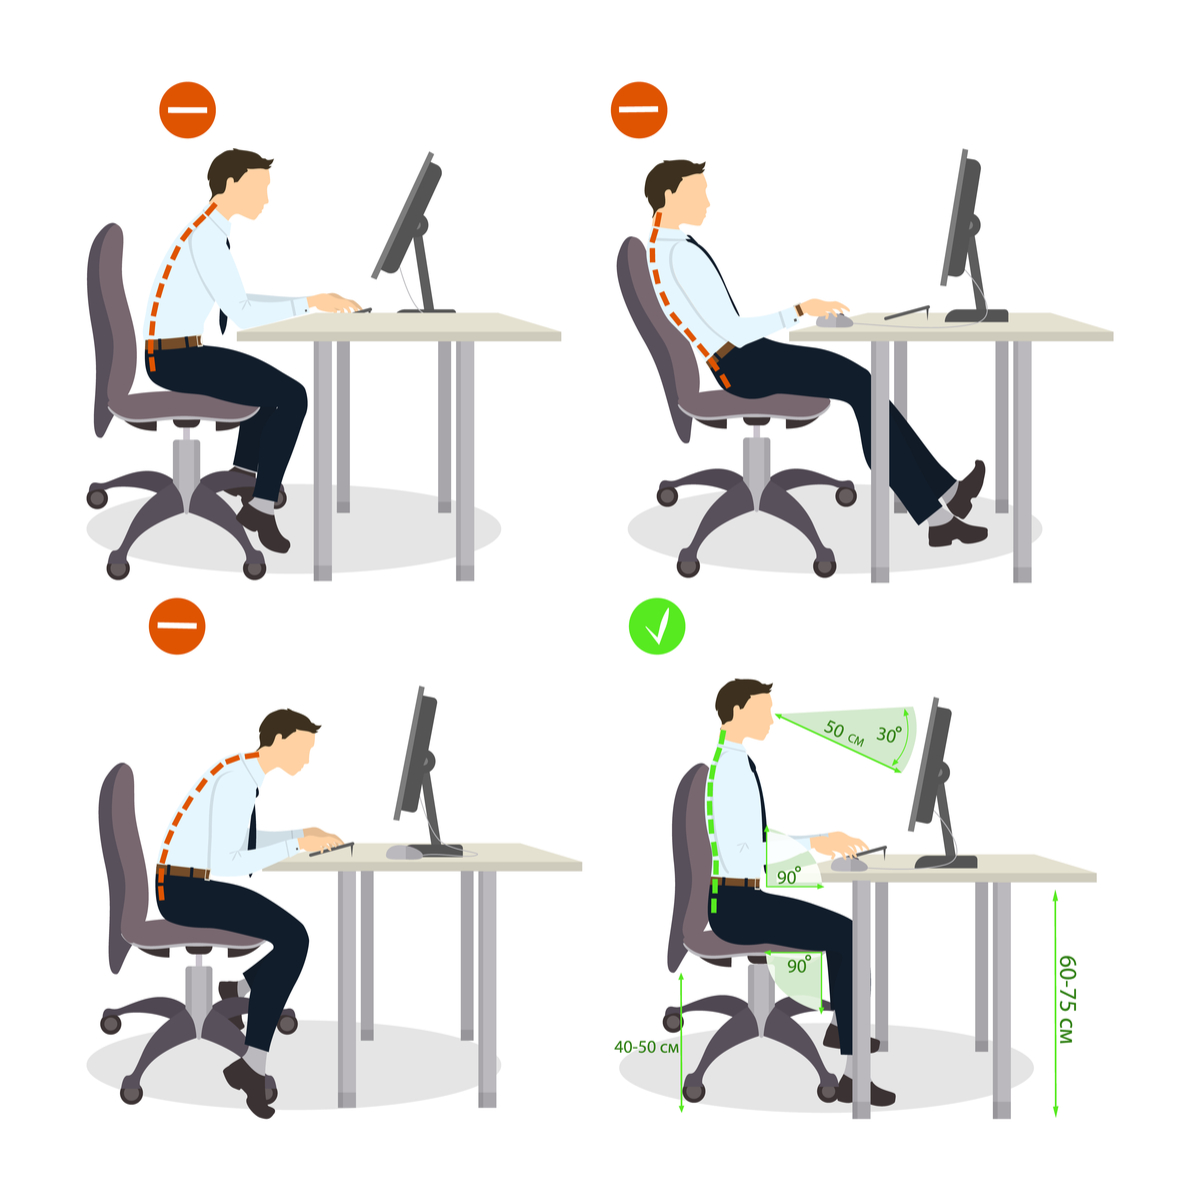 How to properly sit at your desk